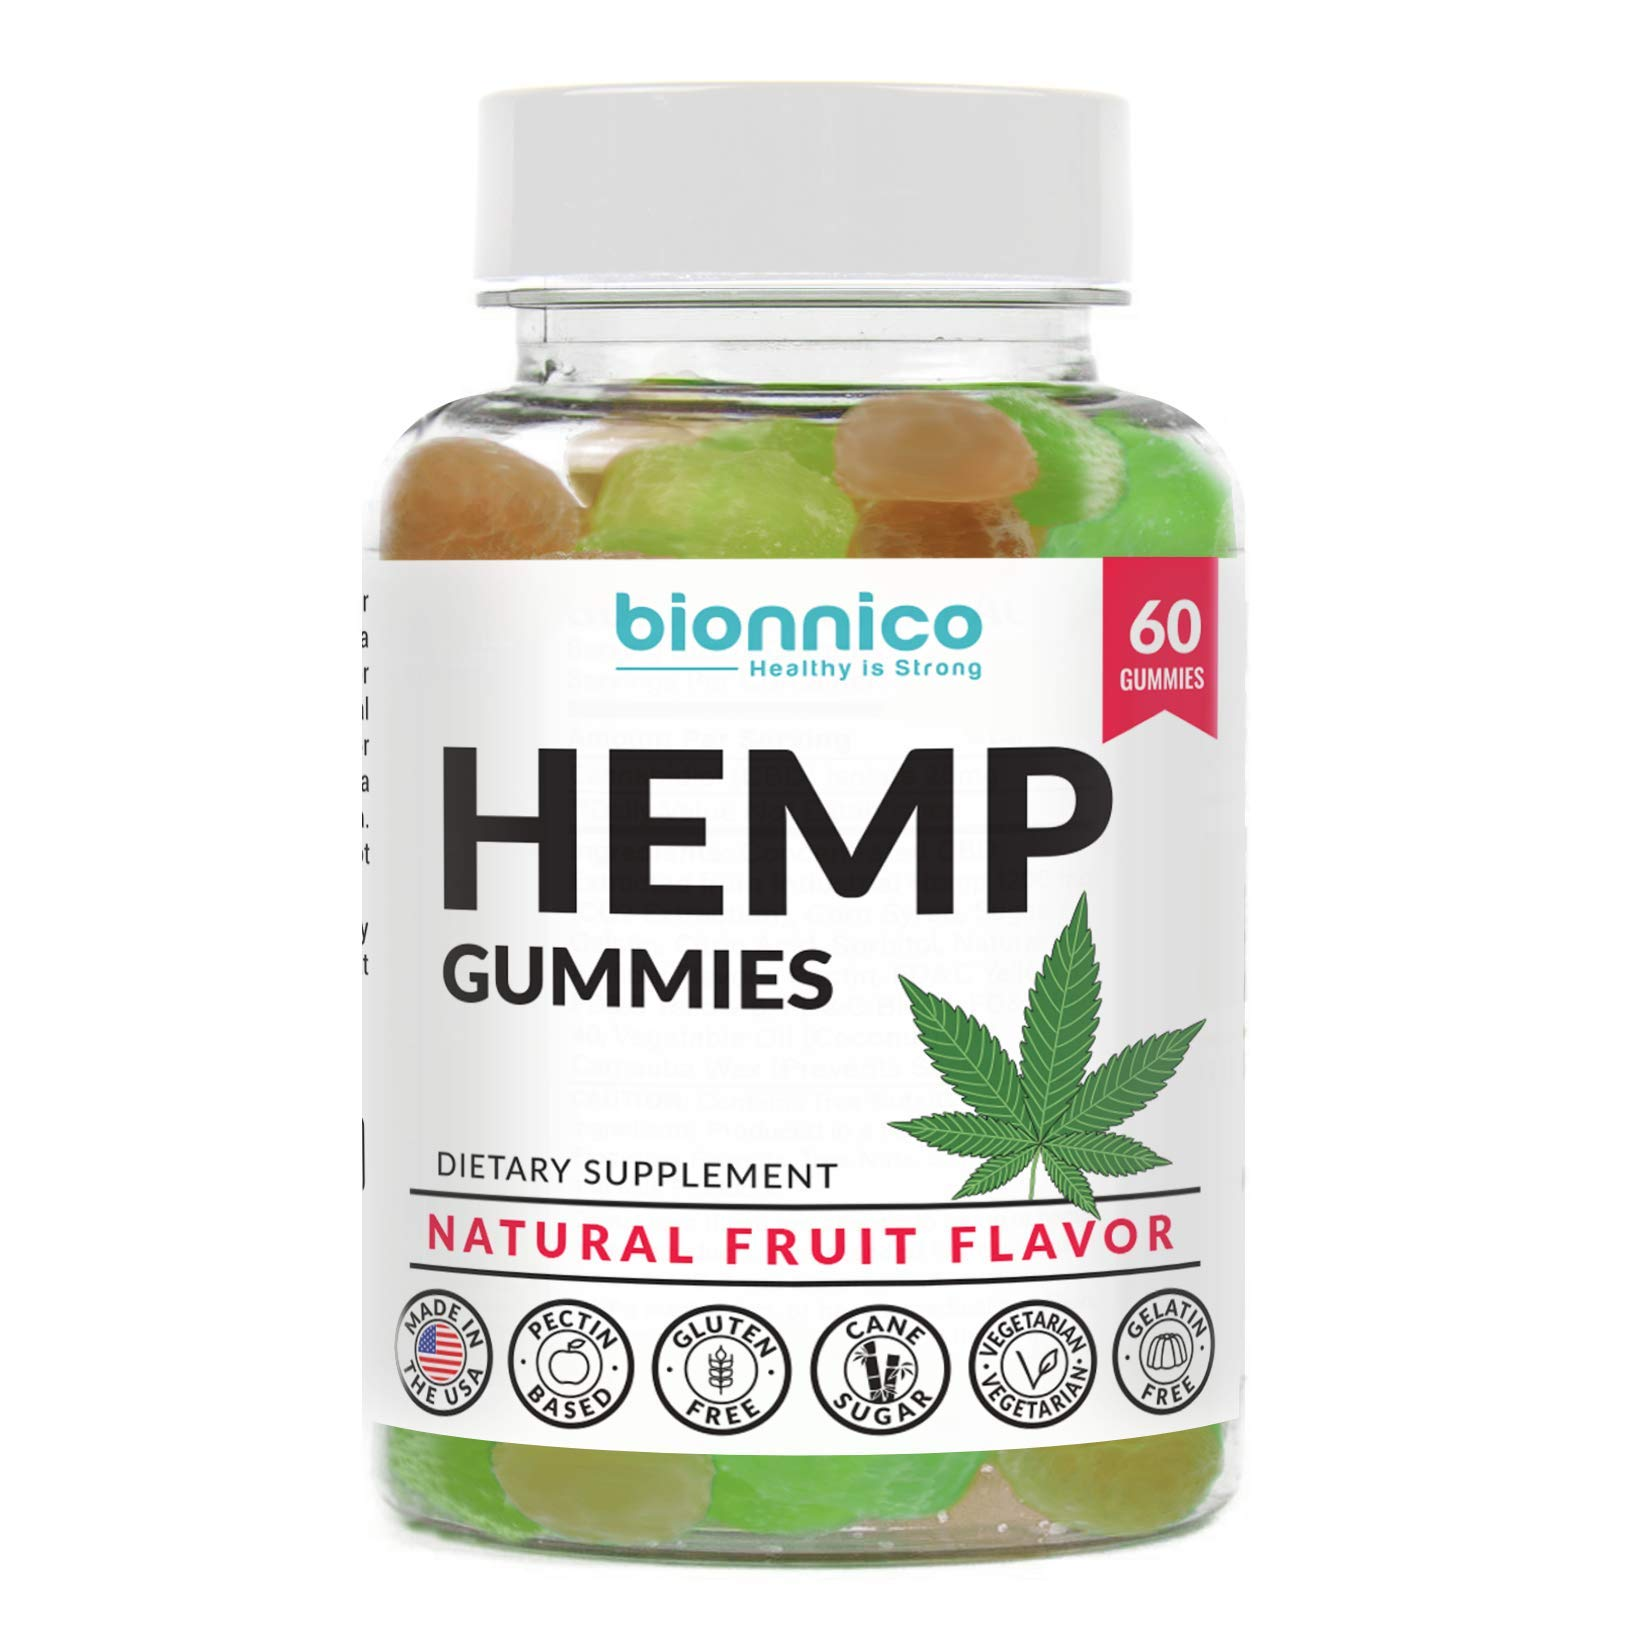 60 Hemp Gummies - Pure Hemp 25mg Oil Extract Infused per Gummy for Pain and Anxiety. Formulated to: Relieve Stress, Joint Inflammation, Depression and Anxiety, Nausea and Sleep Issues.